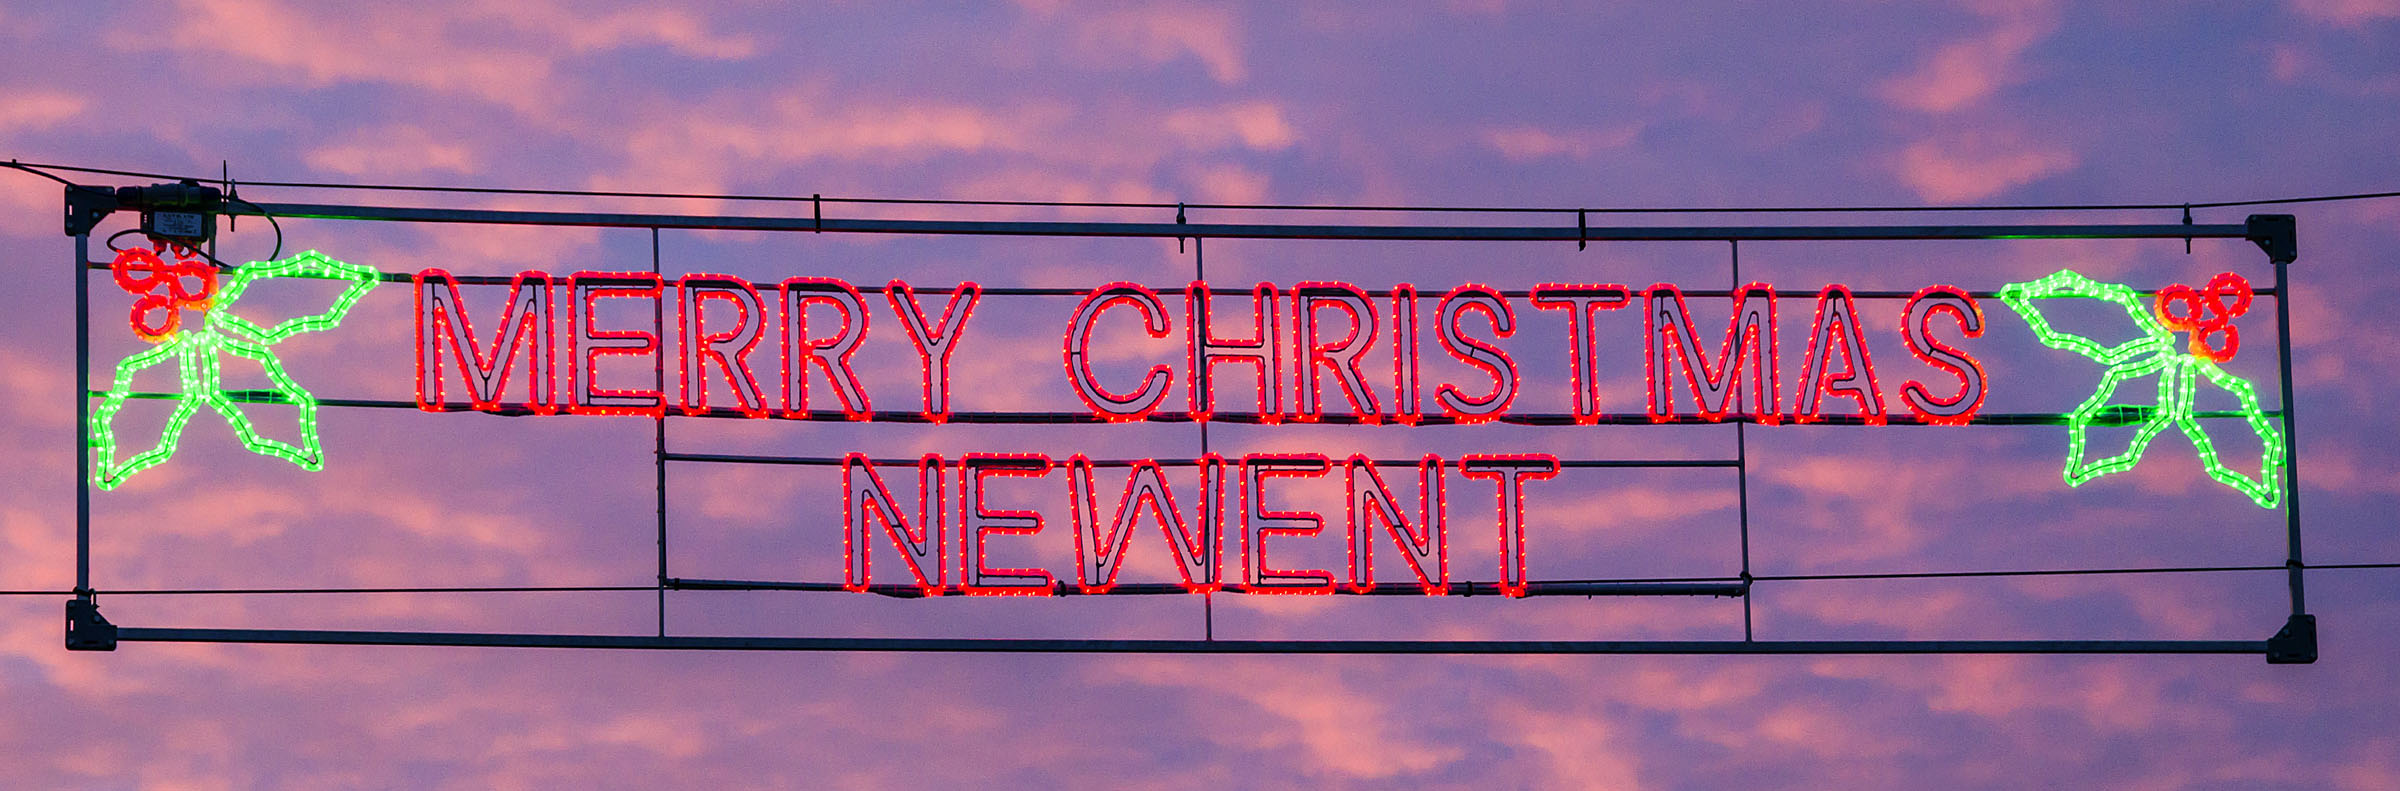 Merry Chistmas Newent